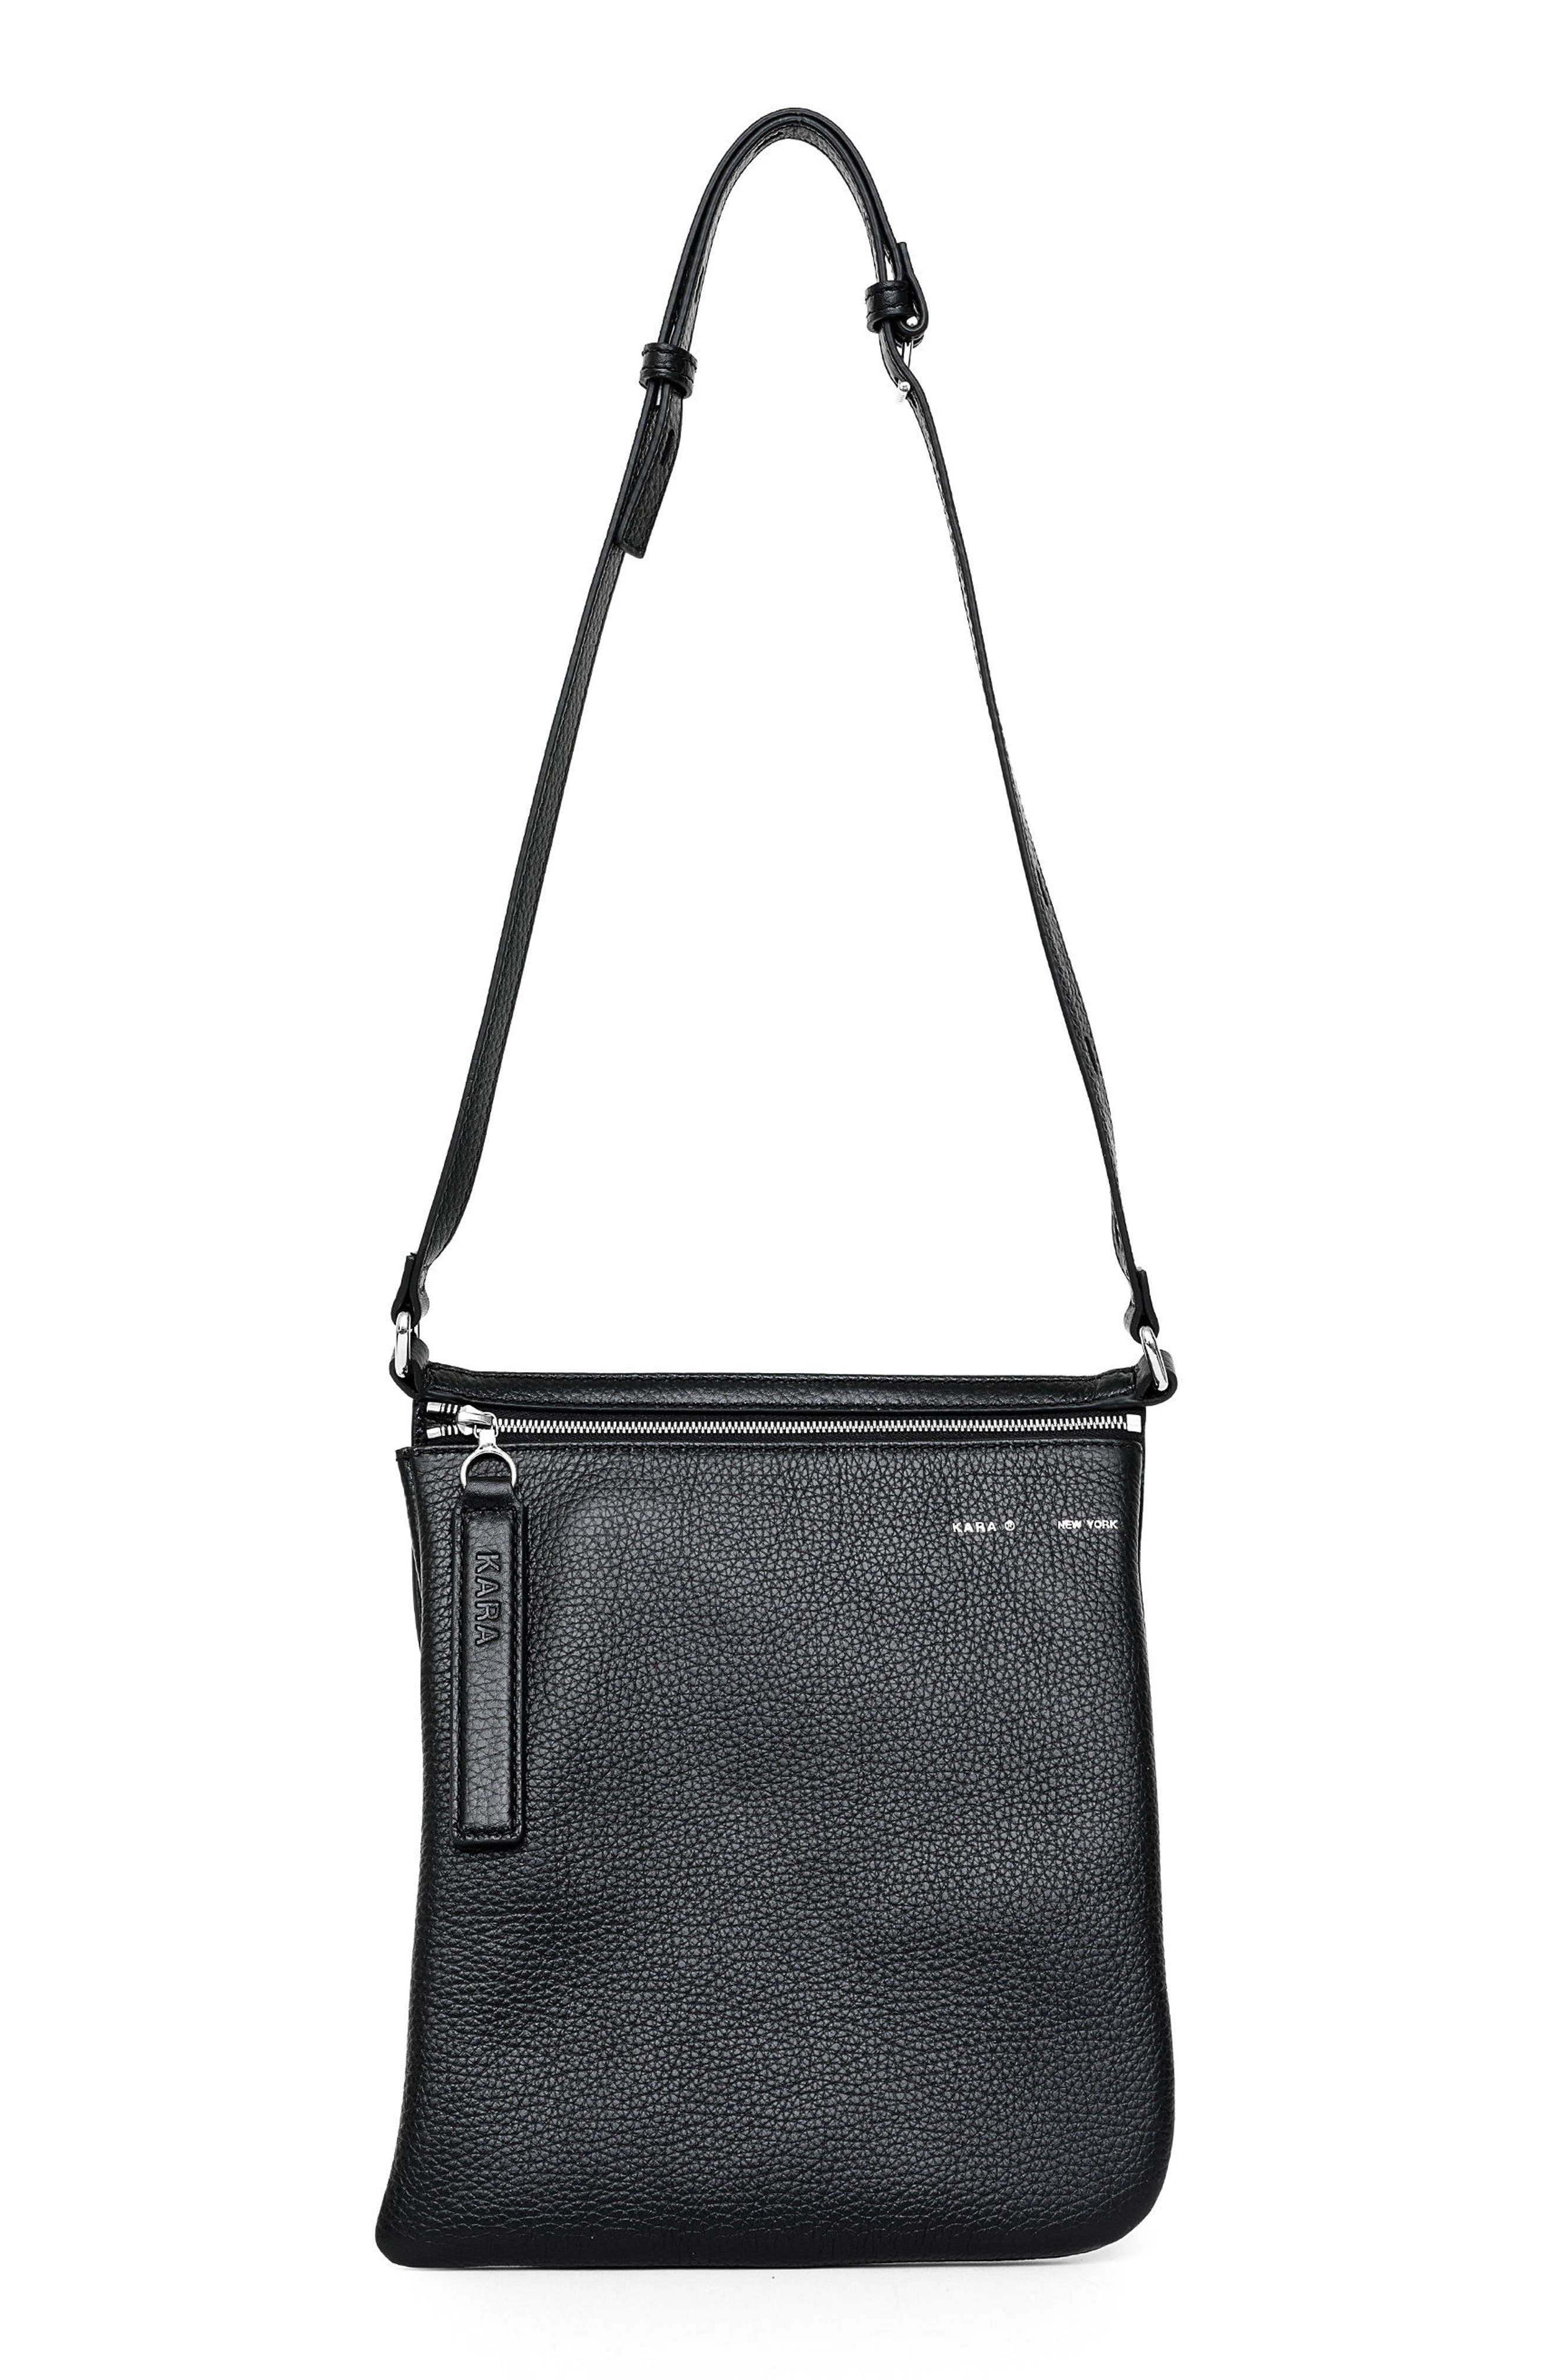 KARA Pebbled Leather Belt Bag